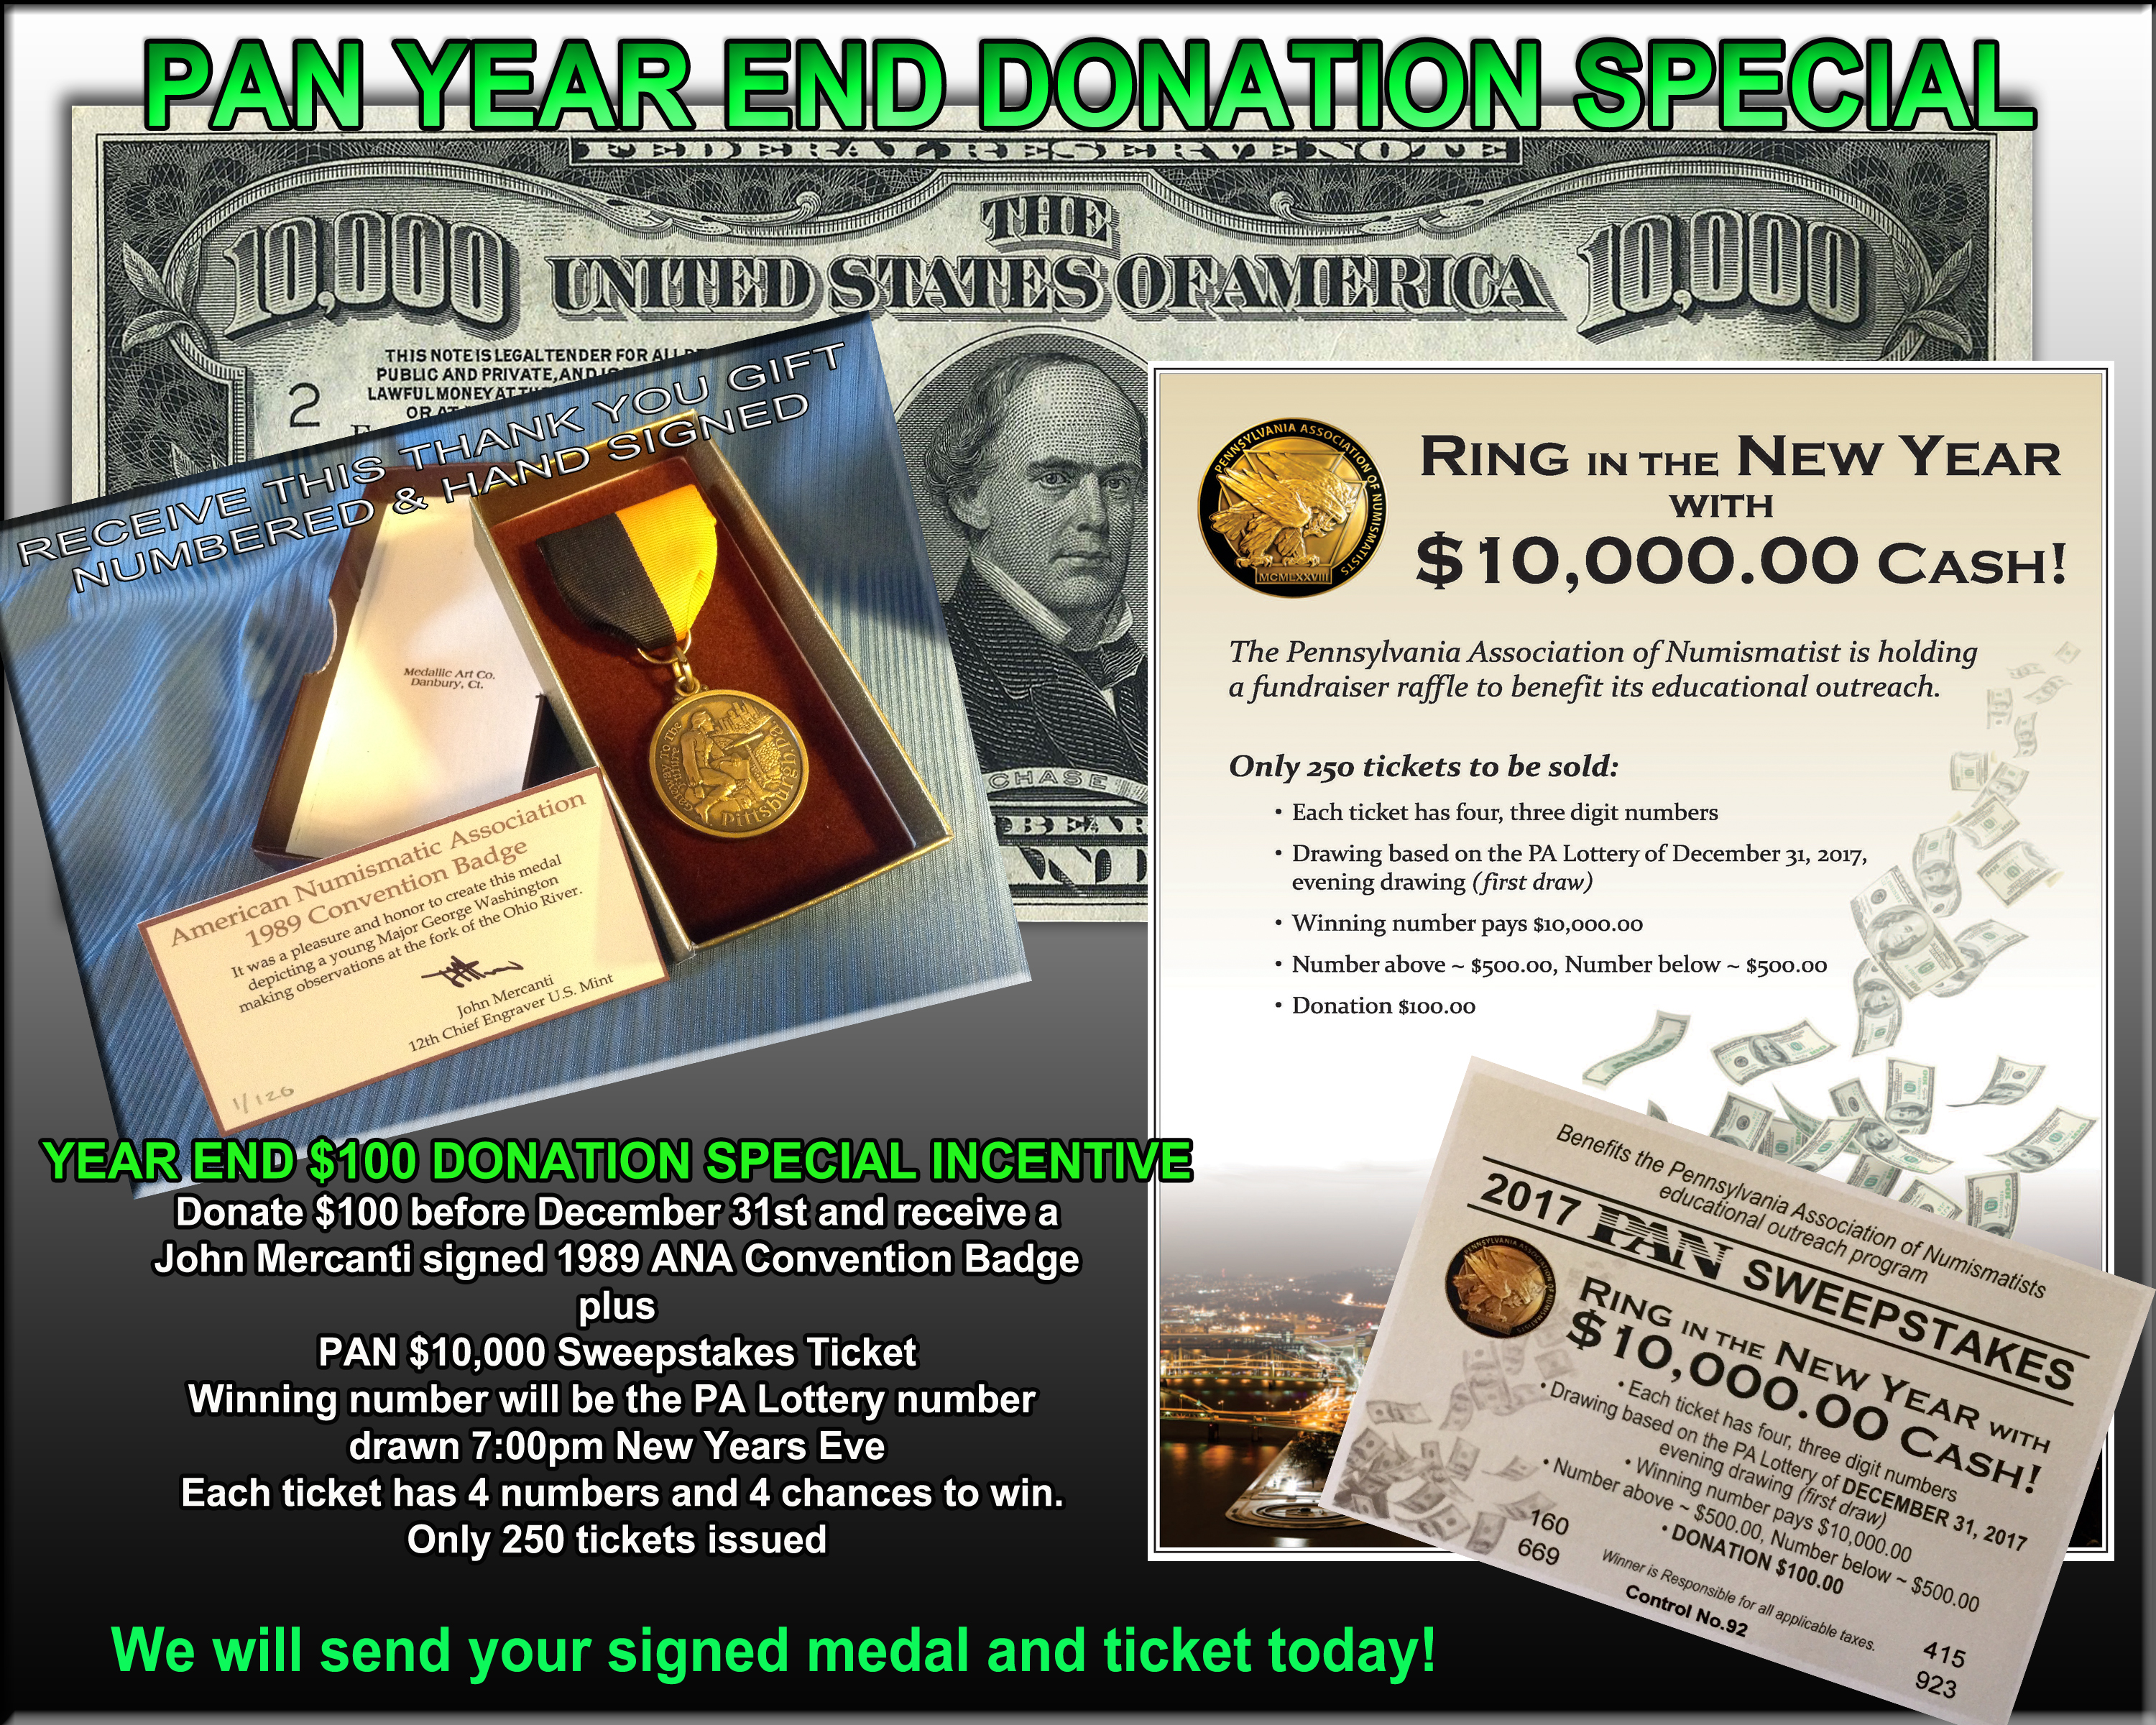 Pennsylvania Association of Numismatists 2017 End of the Year Donation Special